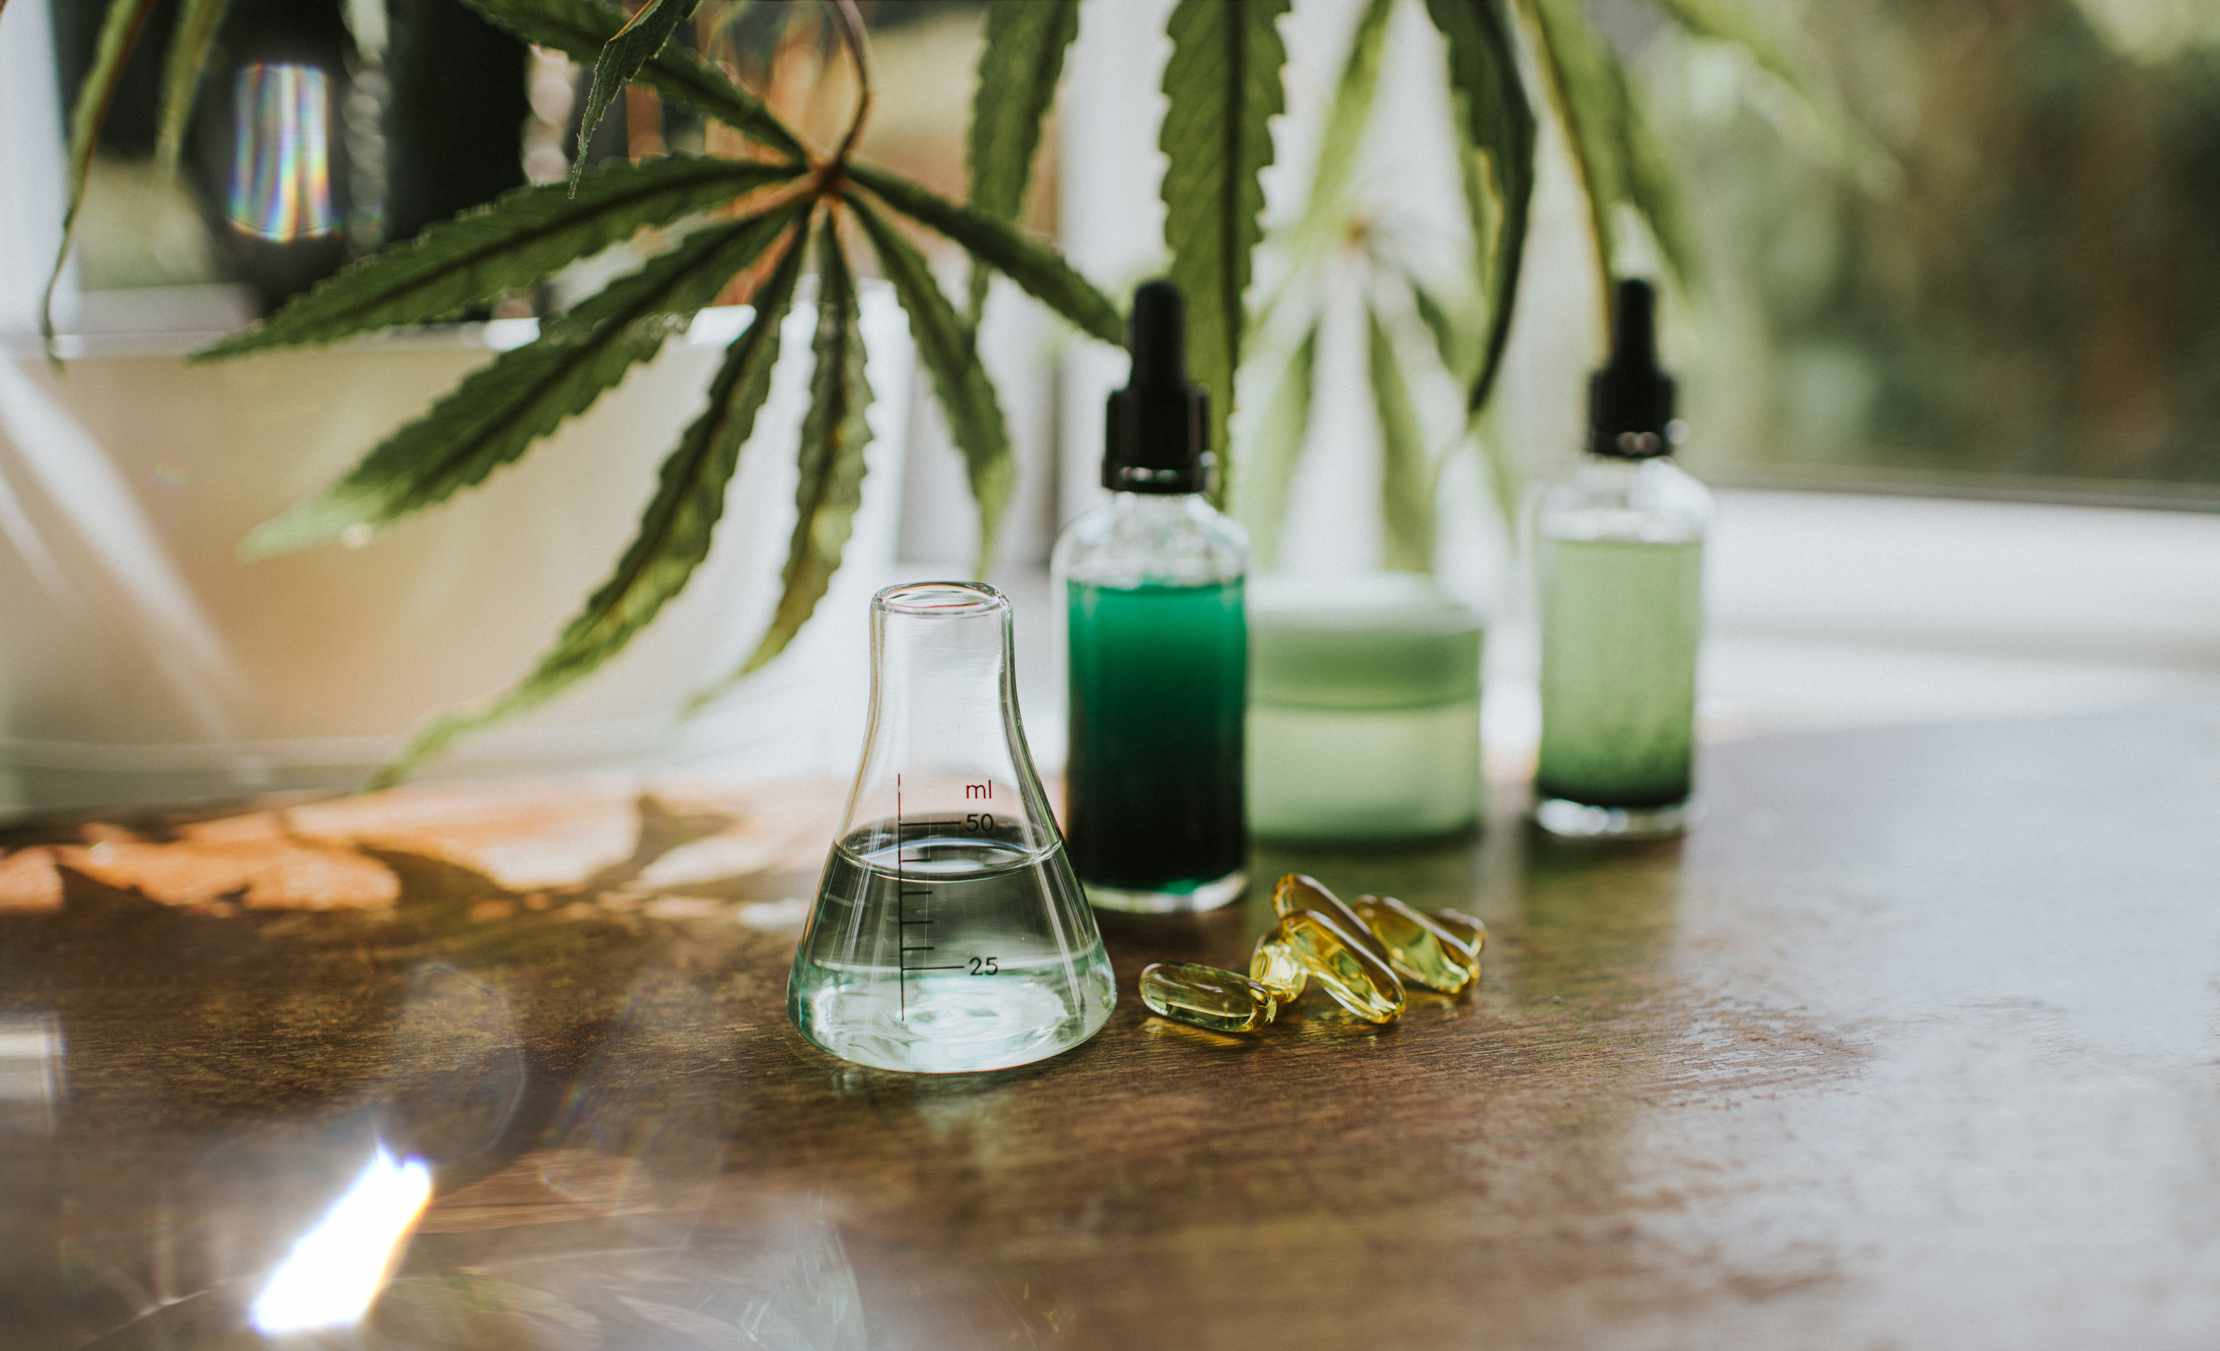 Hasil gambar untuk Buy Quality CBD Products Online To Meet Better Health Condition